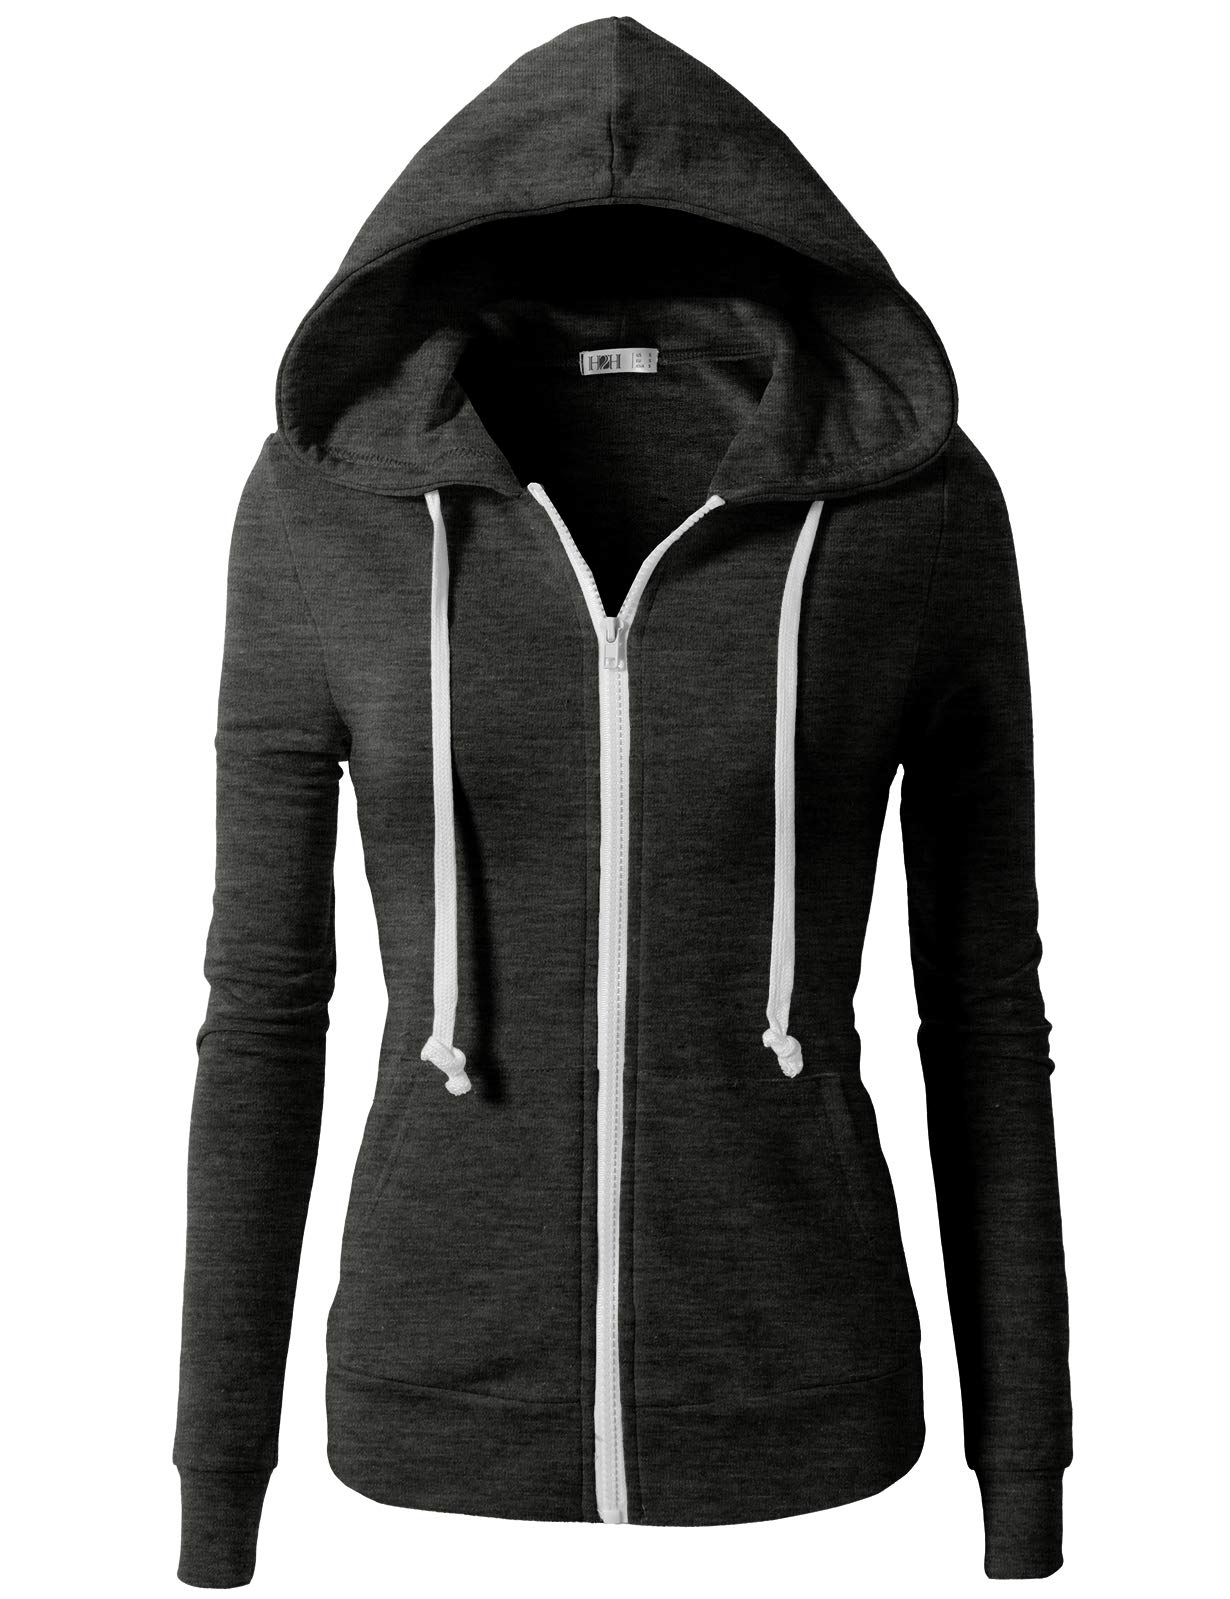 H2H Womens Active Regular Fit Zip up Long Sleeve Hoodie Jacket Charcoal S (CWOHOL020)